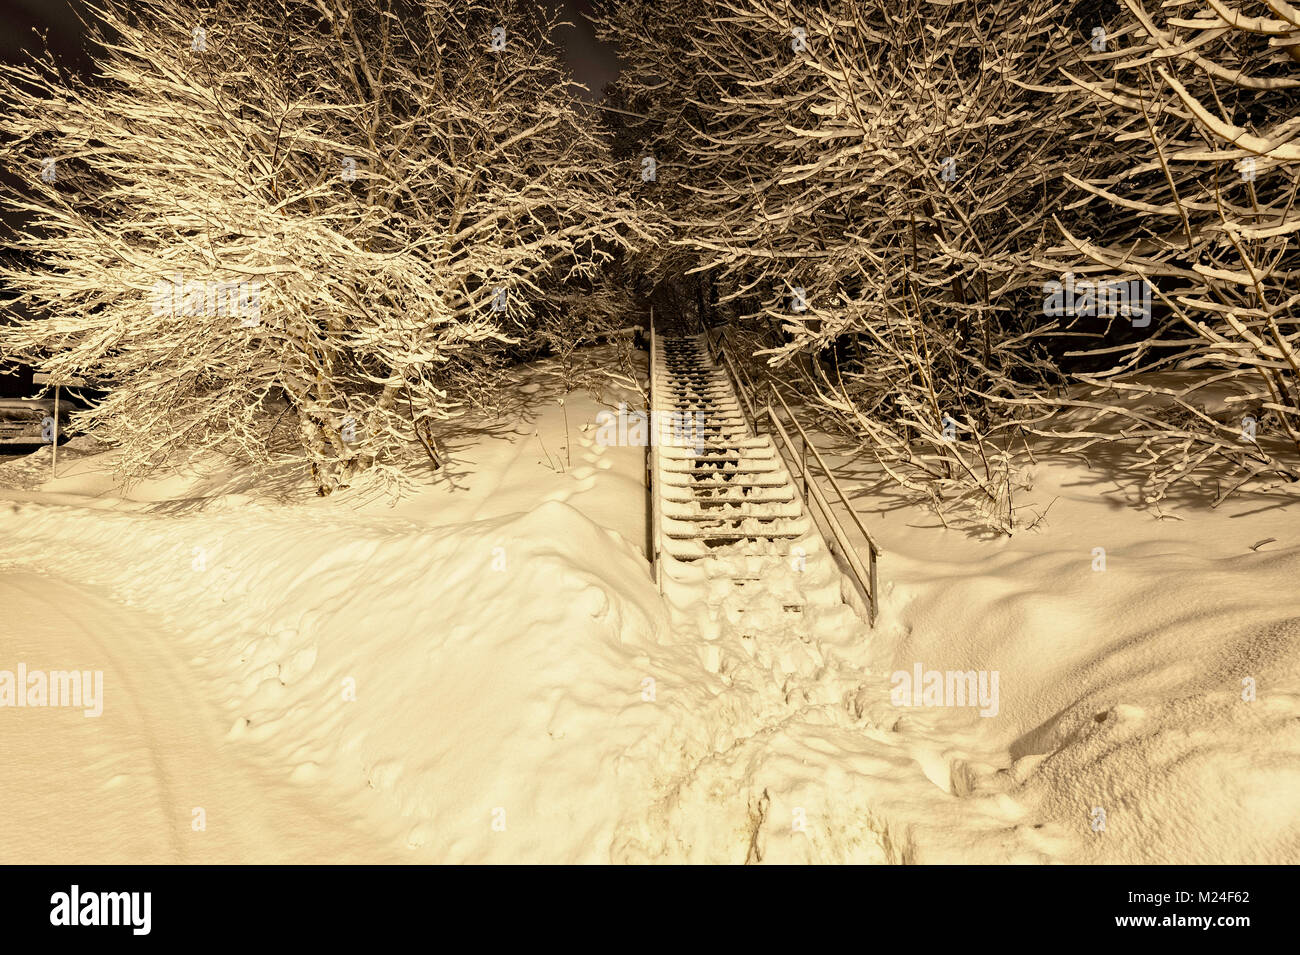 a snow covered stairway at night - Stock Image